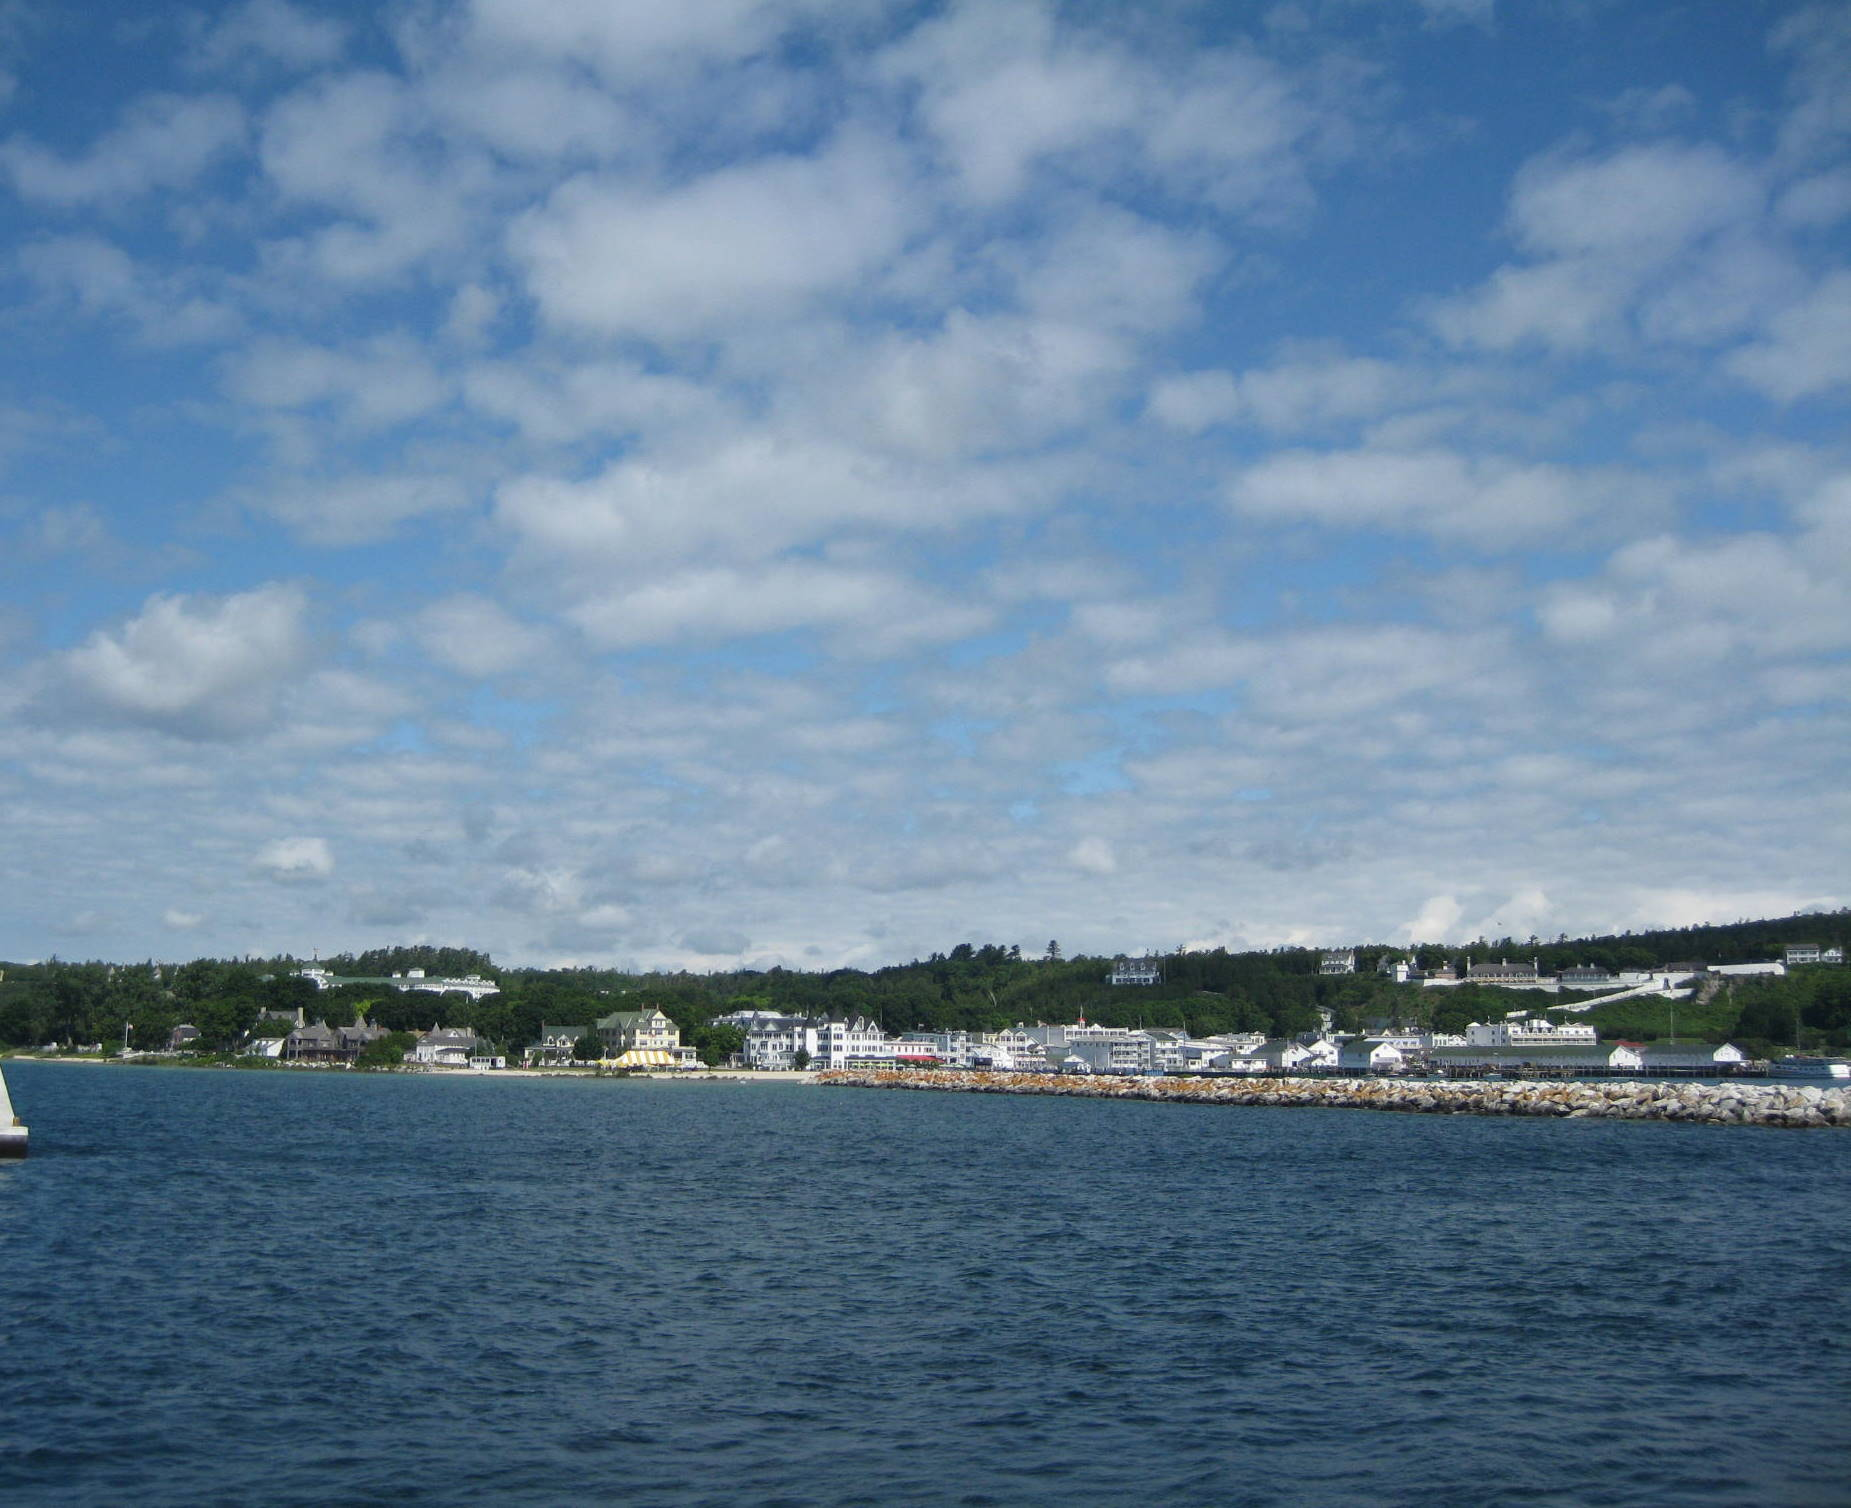 Approaching Mackinac Island by ferry from Mackinaw City.